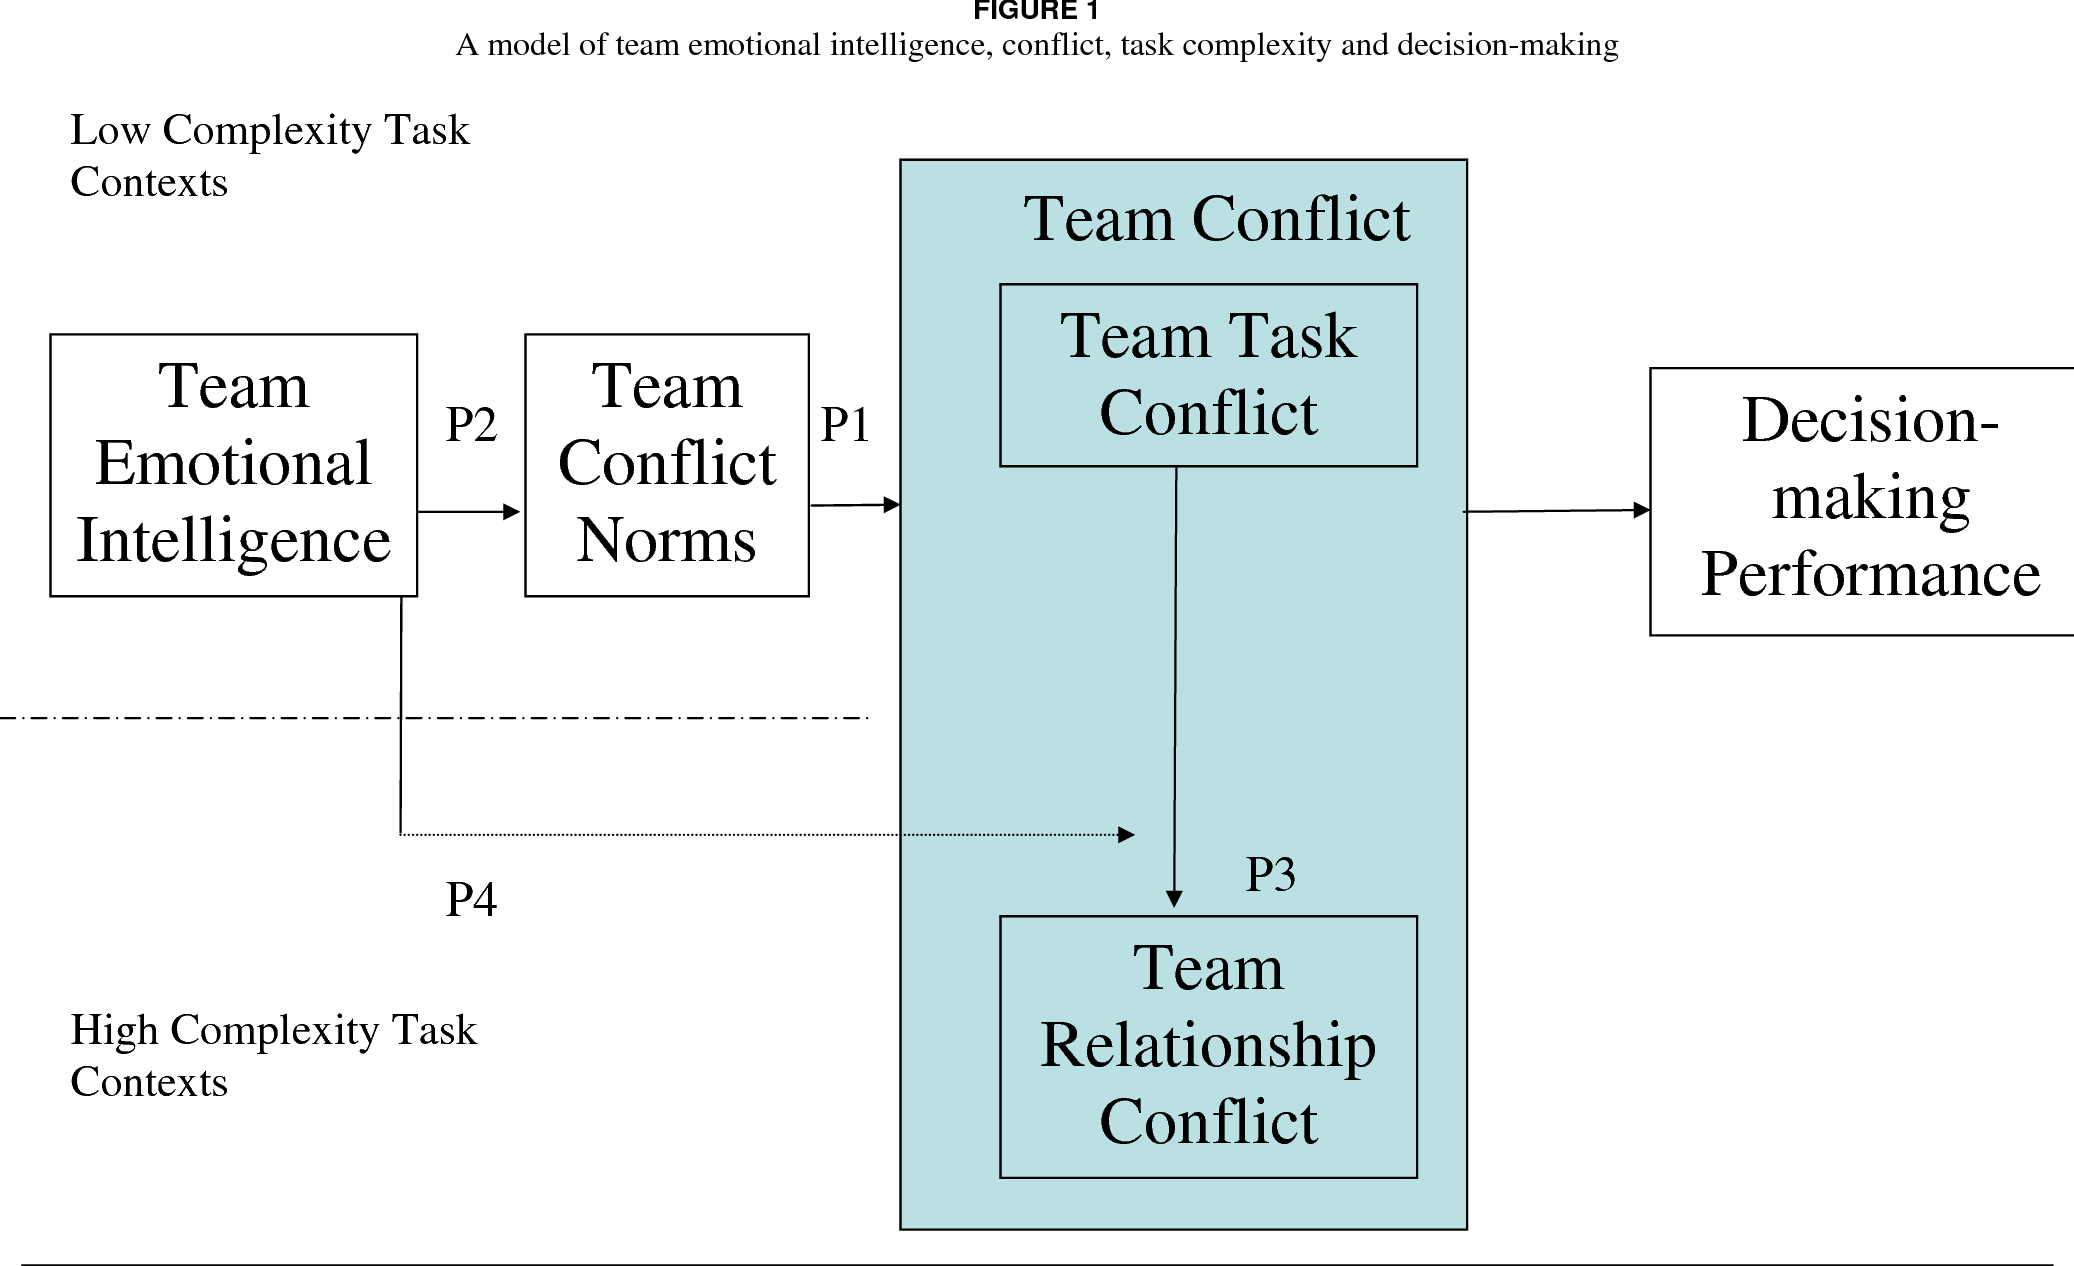 A MODEL OF TEAM EMOTIONAL INTELLIGENCE CONFLICT TASK COMPLEXITY AND DECISION MAKING